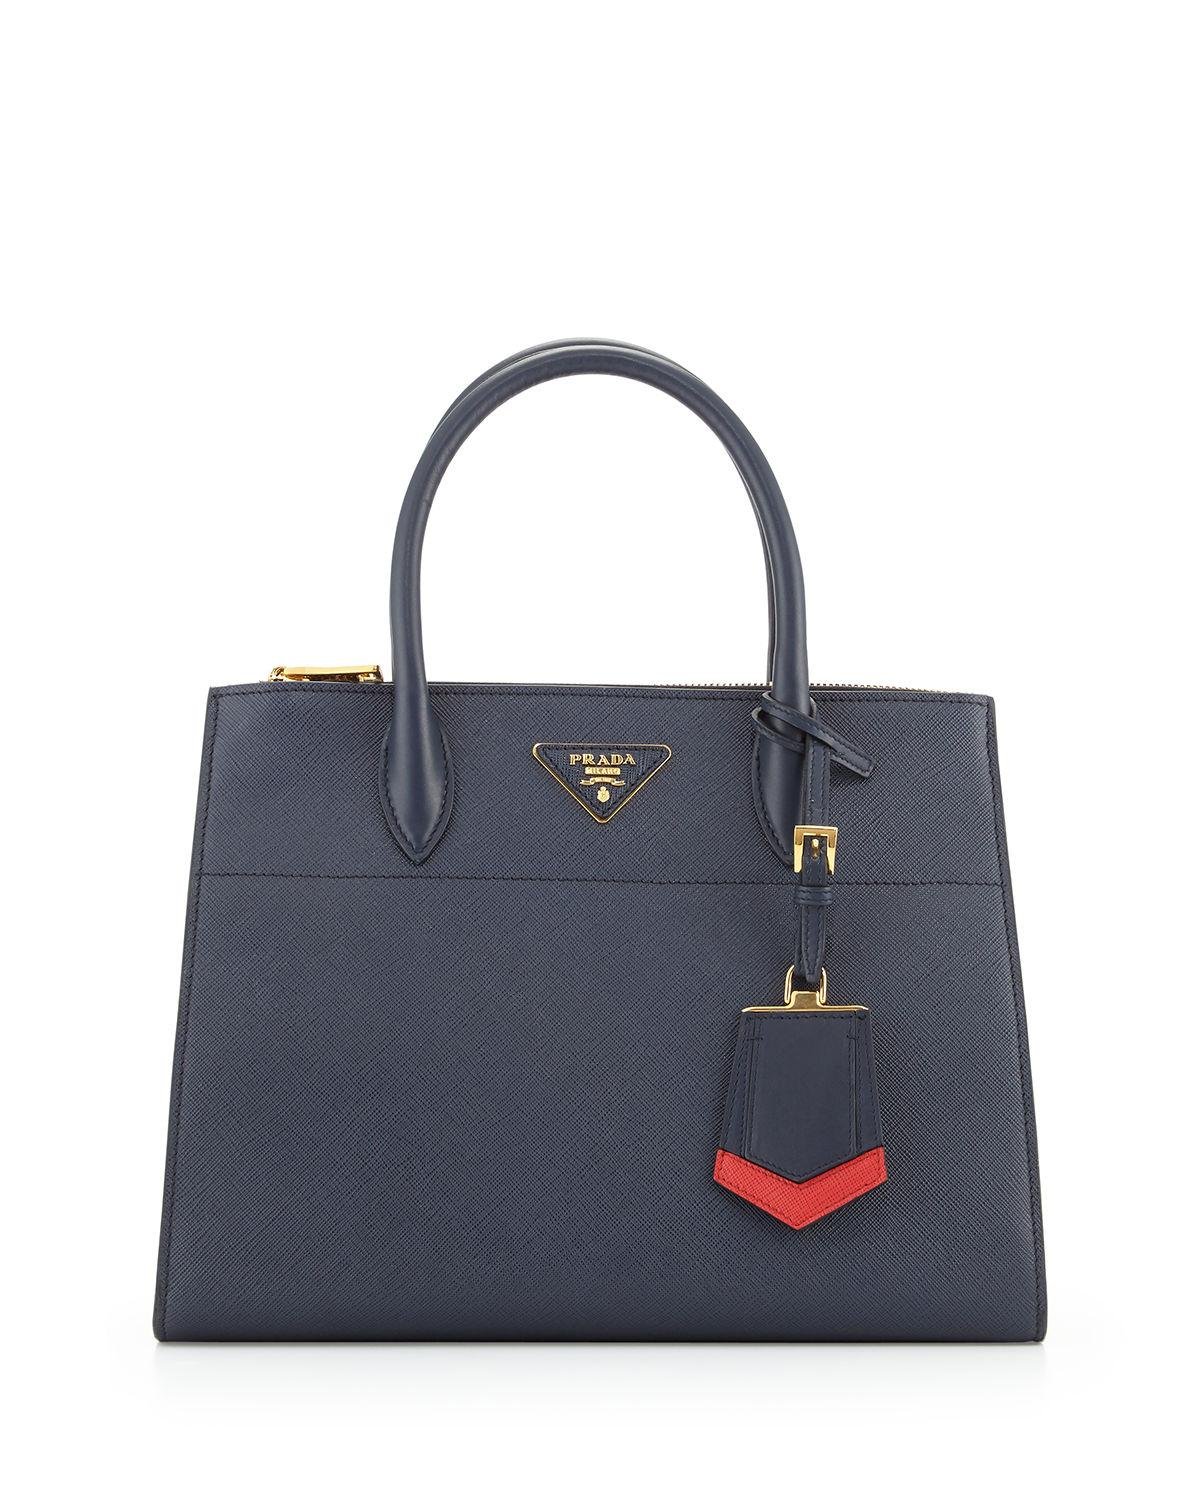 19dce7983289 Prada Medium Saffiano Greca Paradigm Tote Bag In Navy Red White ...